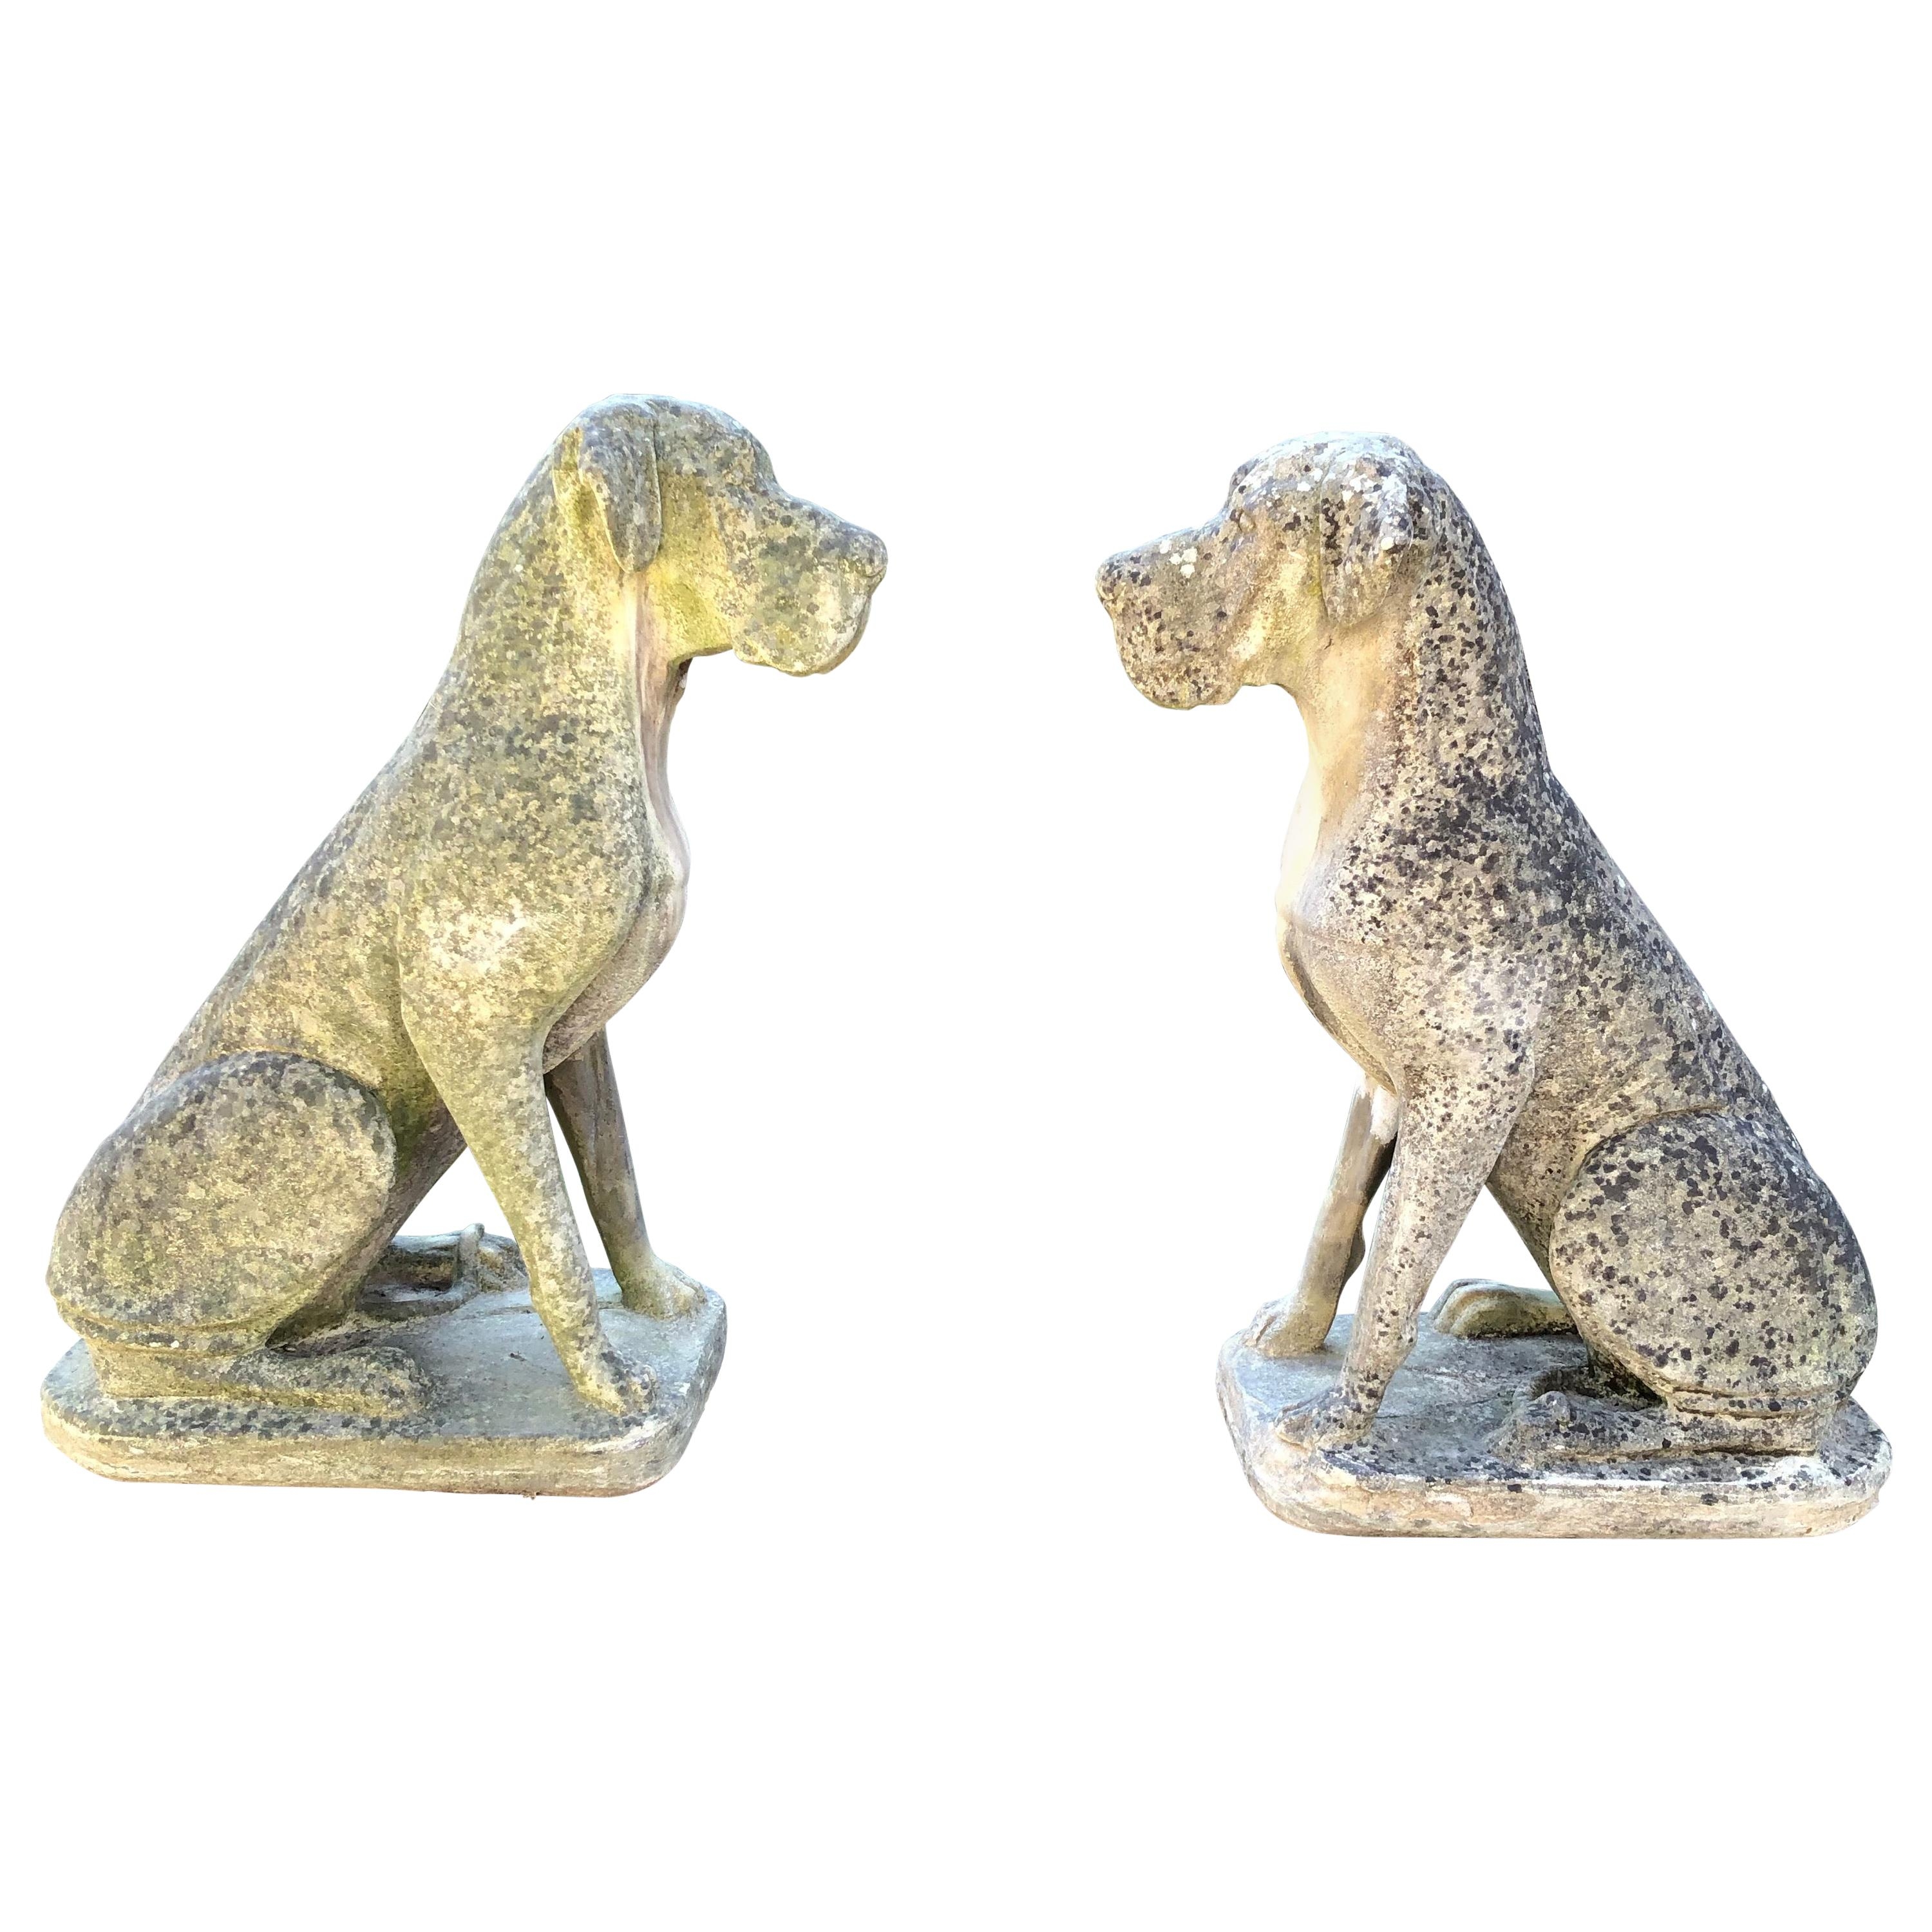 Pair of Over-Scale English Cast Stone Great Dane Dogs with Superb Patina